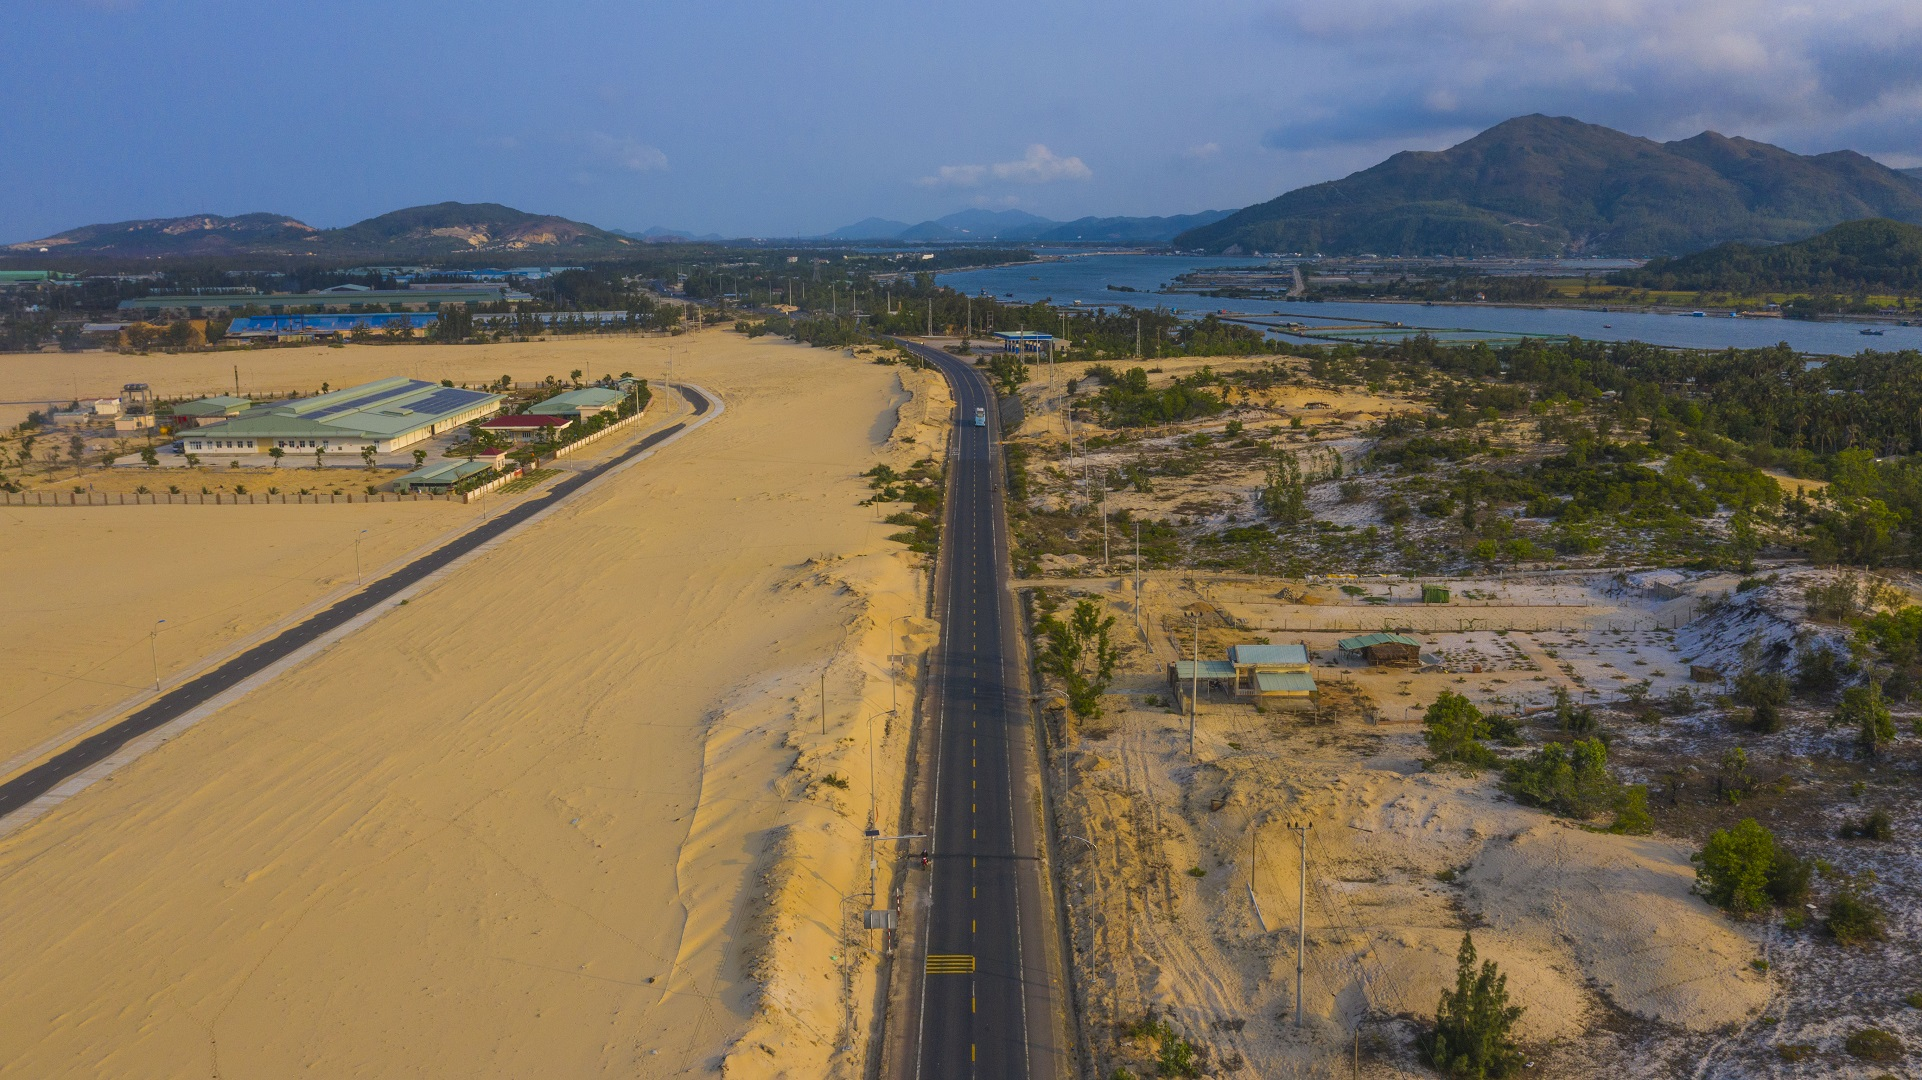 A coastal road through a desert in the central province of Phu Yen's Song Cau Town. Photo: Quang Dinh / Tuoi Tre News